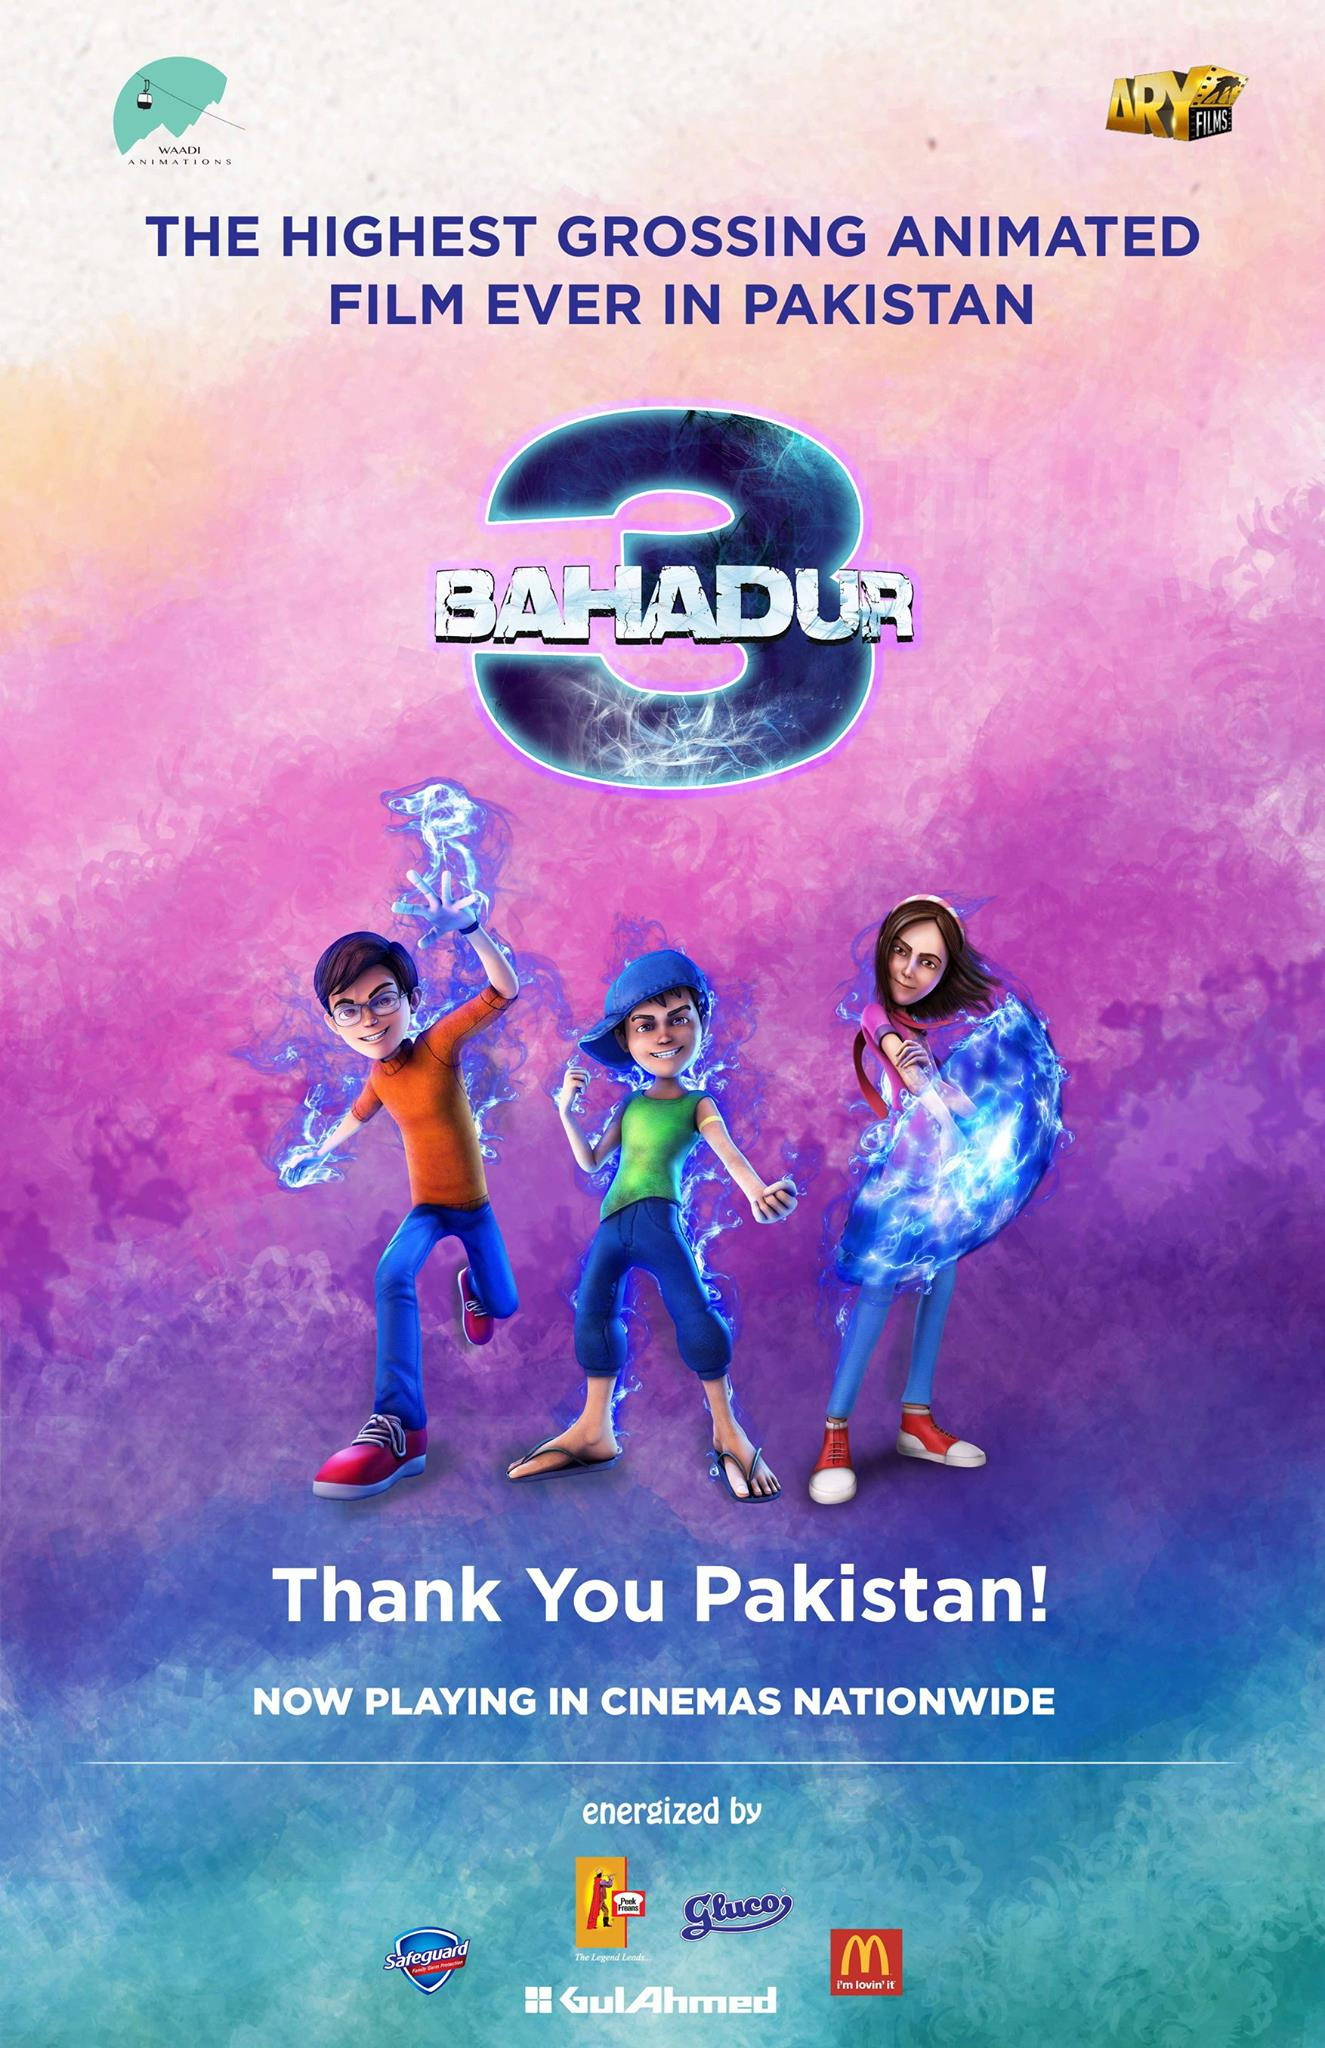 3 Bahadur Is The Highest Grossing Animated Film Ever In Pakistan